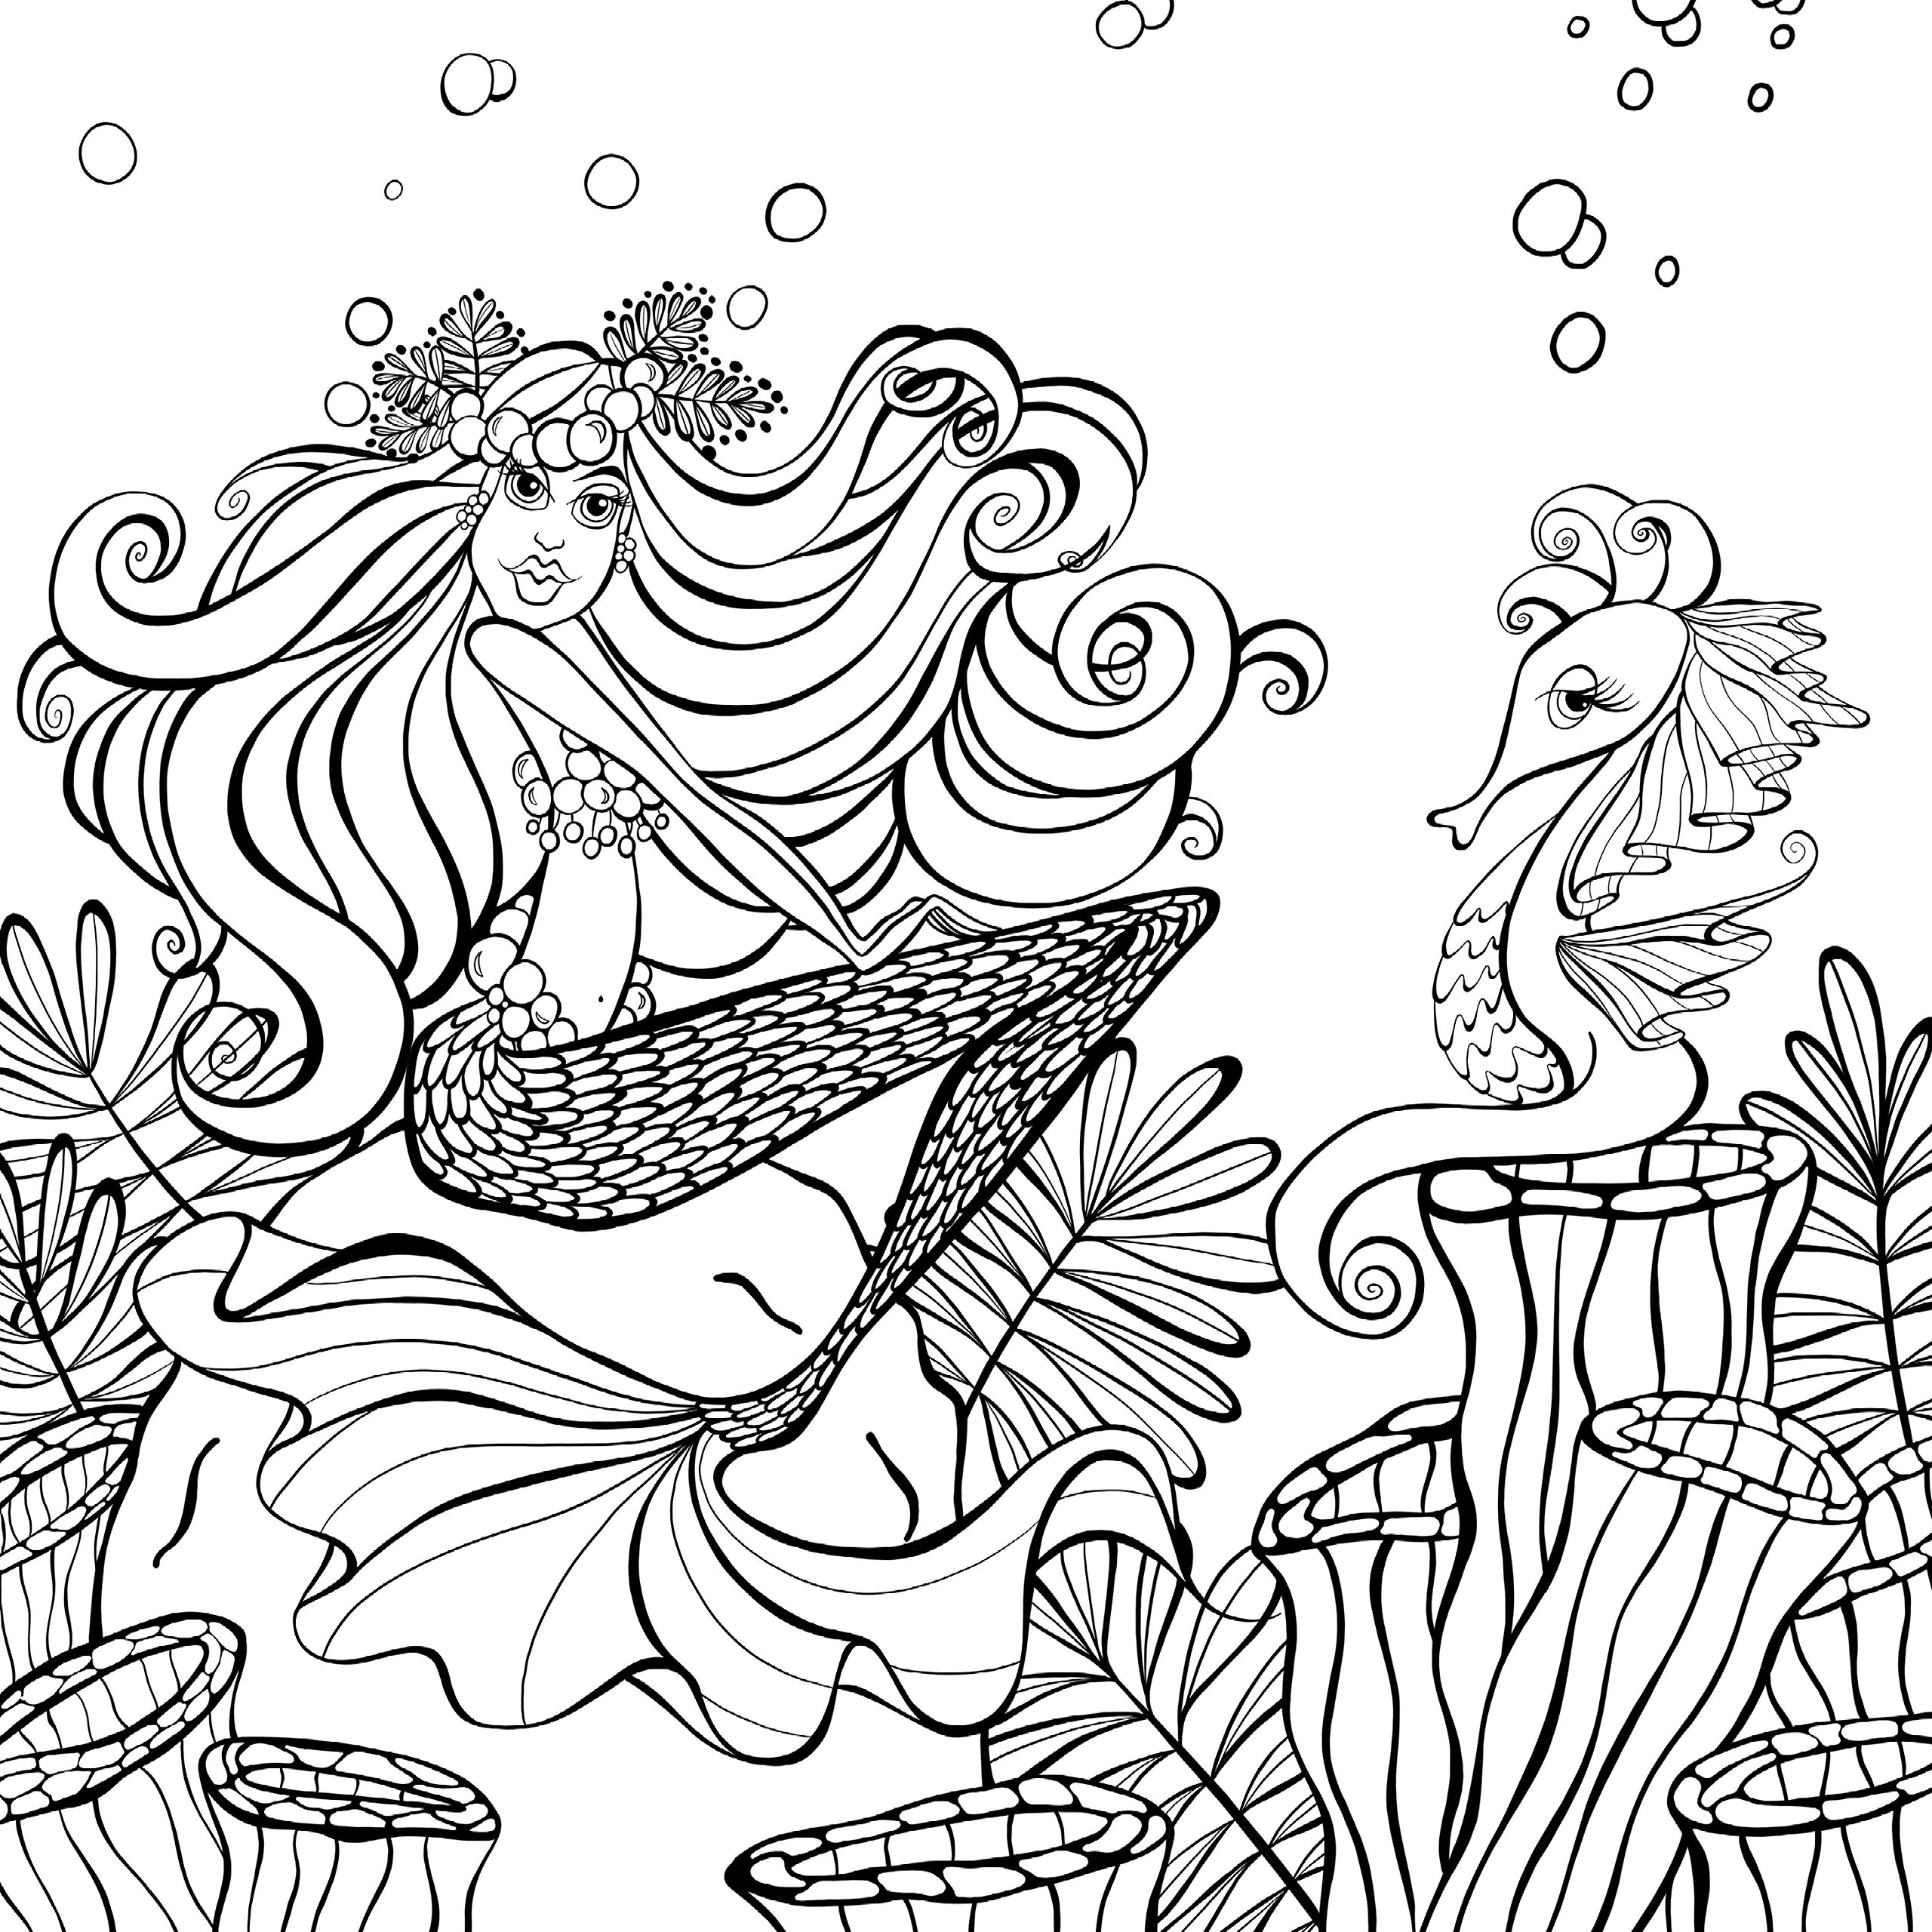 Coloring book download zip - Amazon Com Zendoodle Coloring Presents Mermaids In Paradise An Artist S Coloring Book 9781250147691 Denyse Klette Books